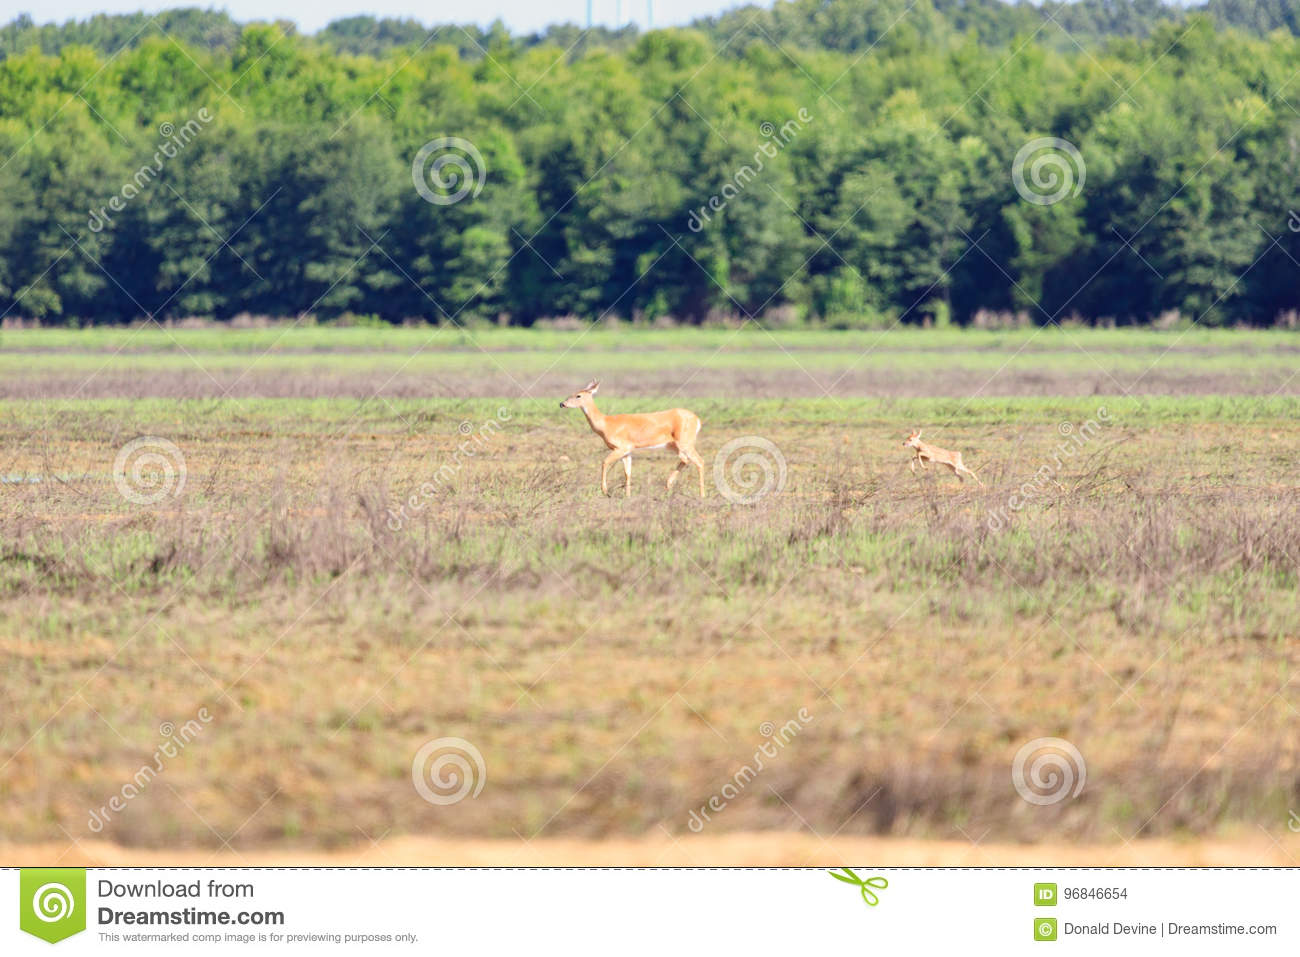 A white-tailed doe and her fawn walk across a field in Bald Knob Wildlife Refuge in Bald Knob